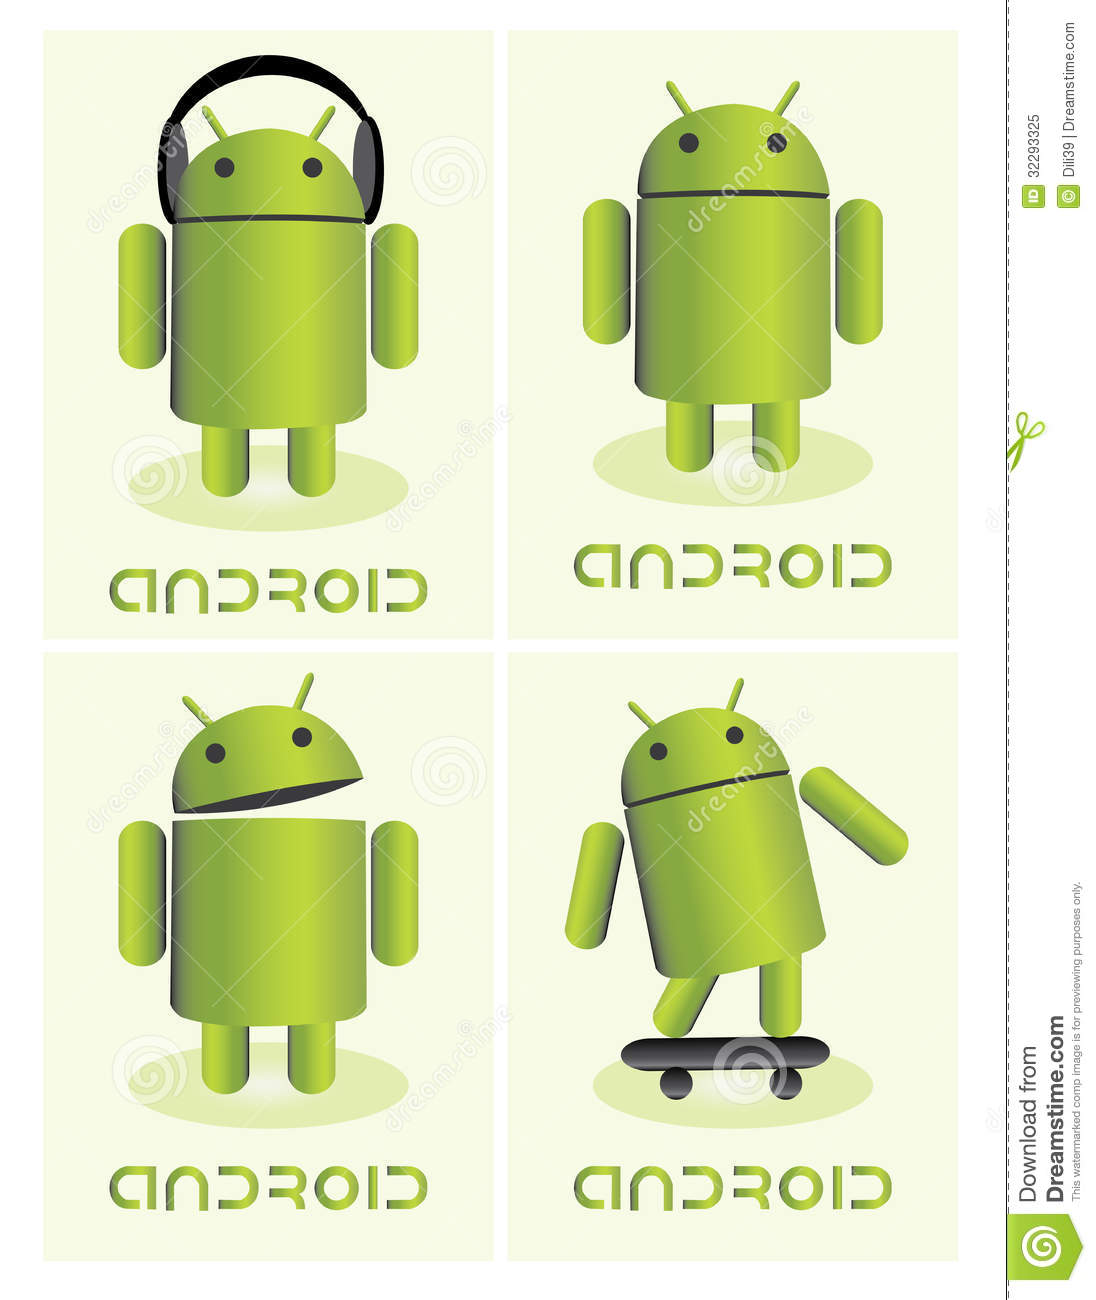 Android Editorial Image - Image: 32293325  Android Editori...